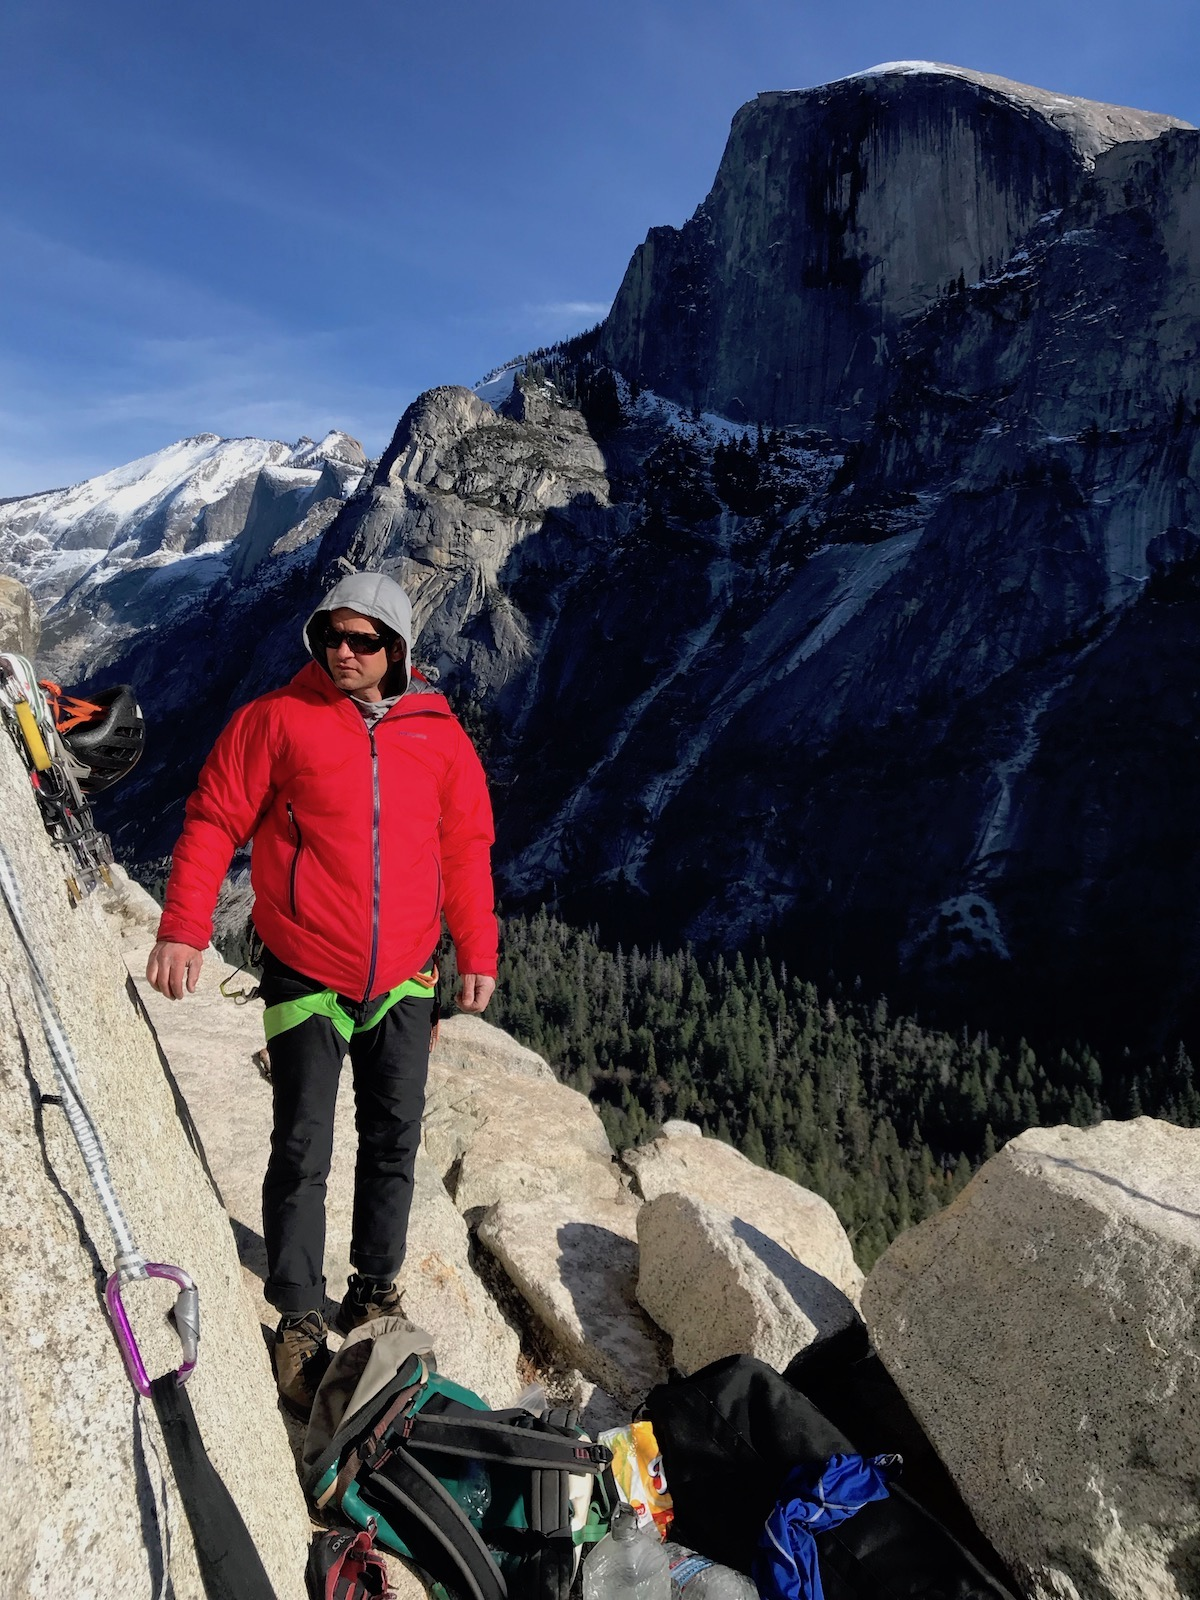 The author on Washington Column wearing the Patagonia Mirco Puff Storm Jacket. [Photo] Andy Hoeckel